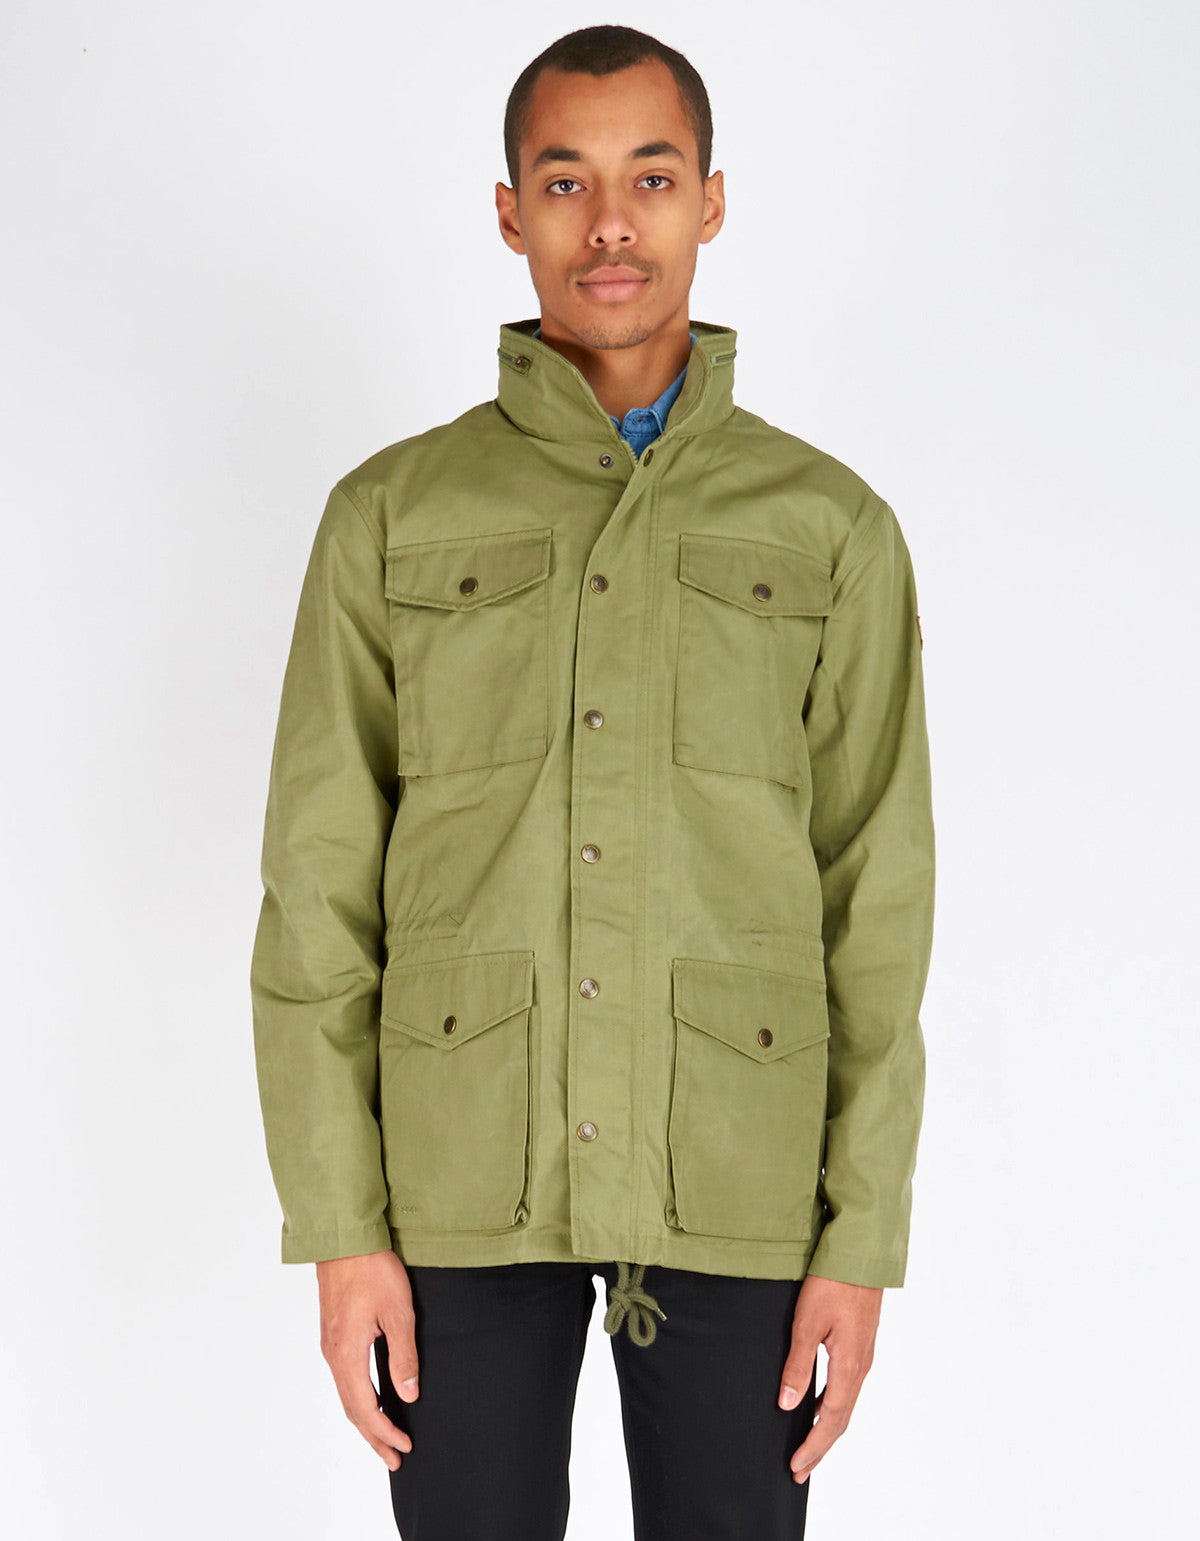 Fjallraven Raven Jacket Green - Still Life - 1